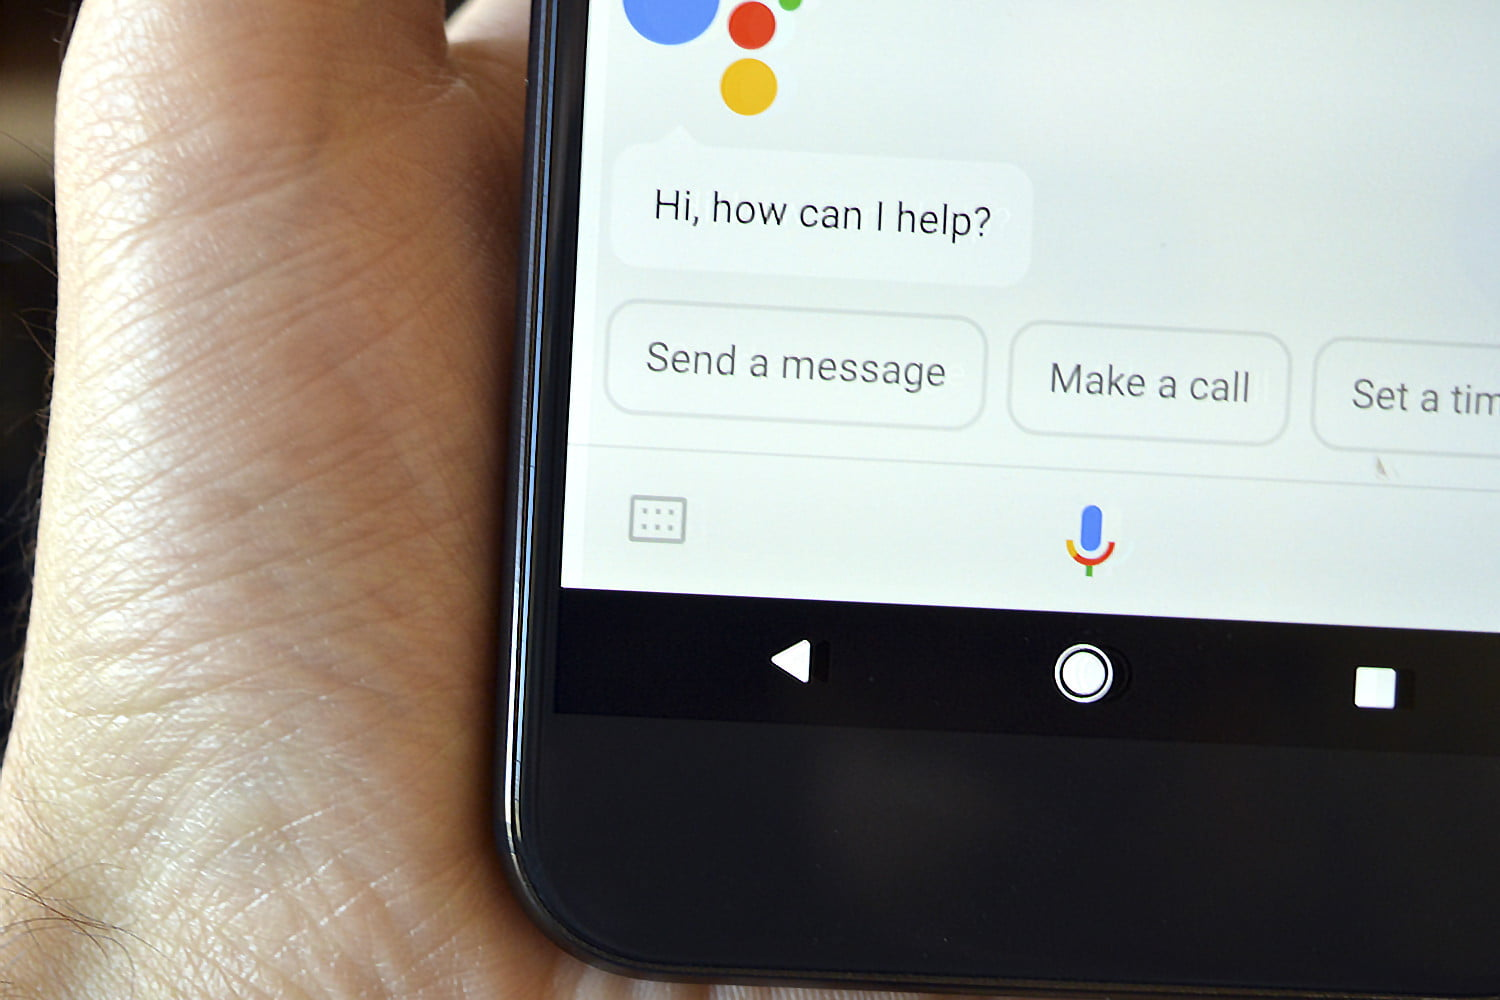 Google Assistant 2.0 is now rolling out, starting with Pixel phones